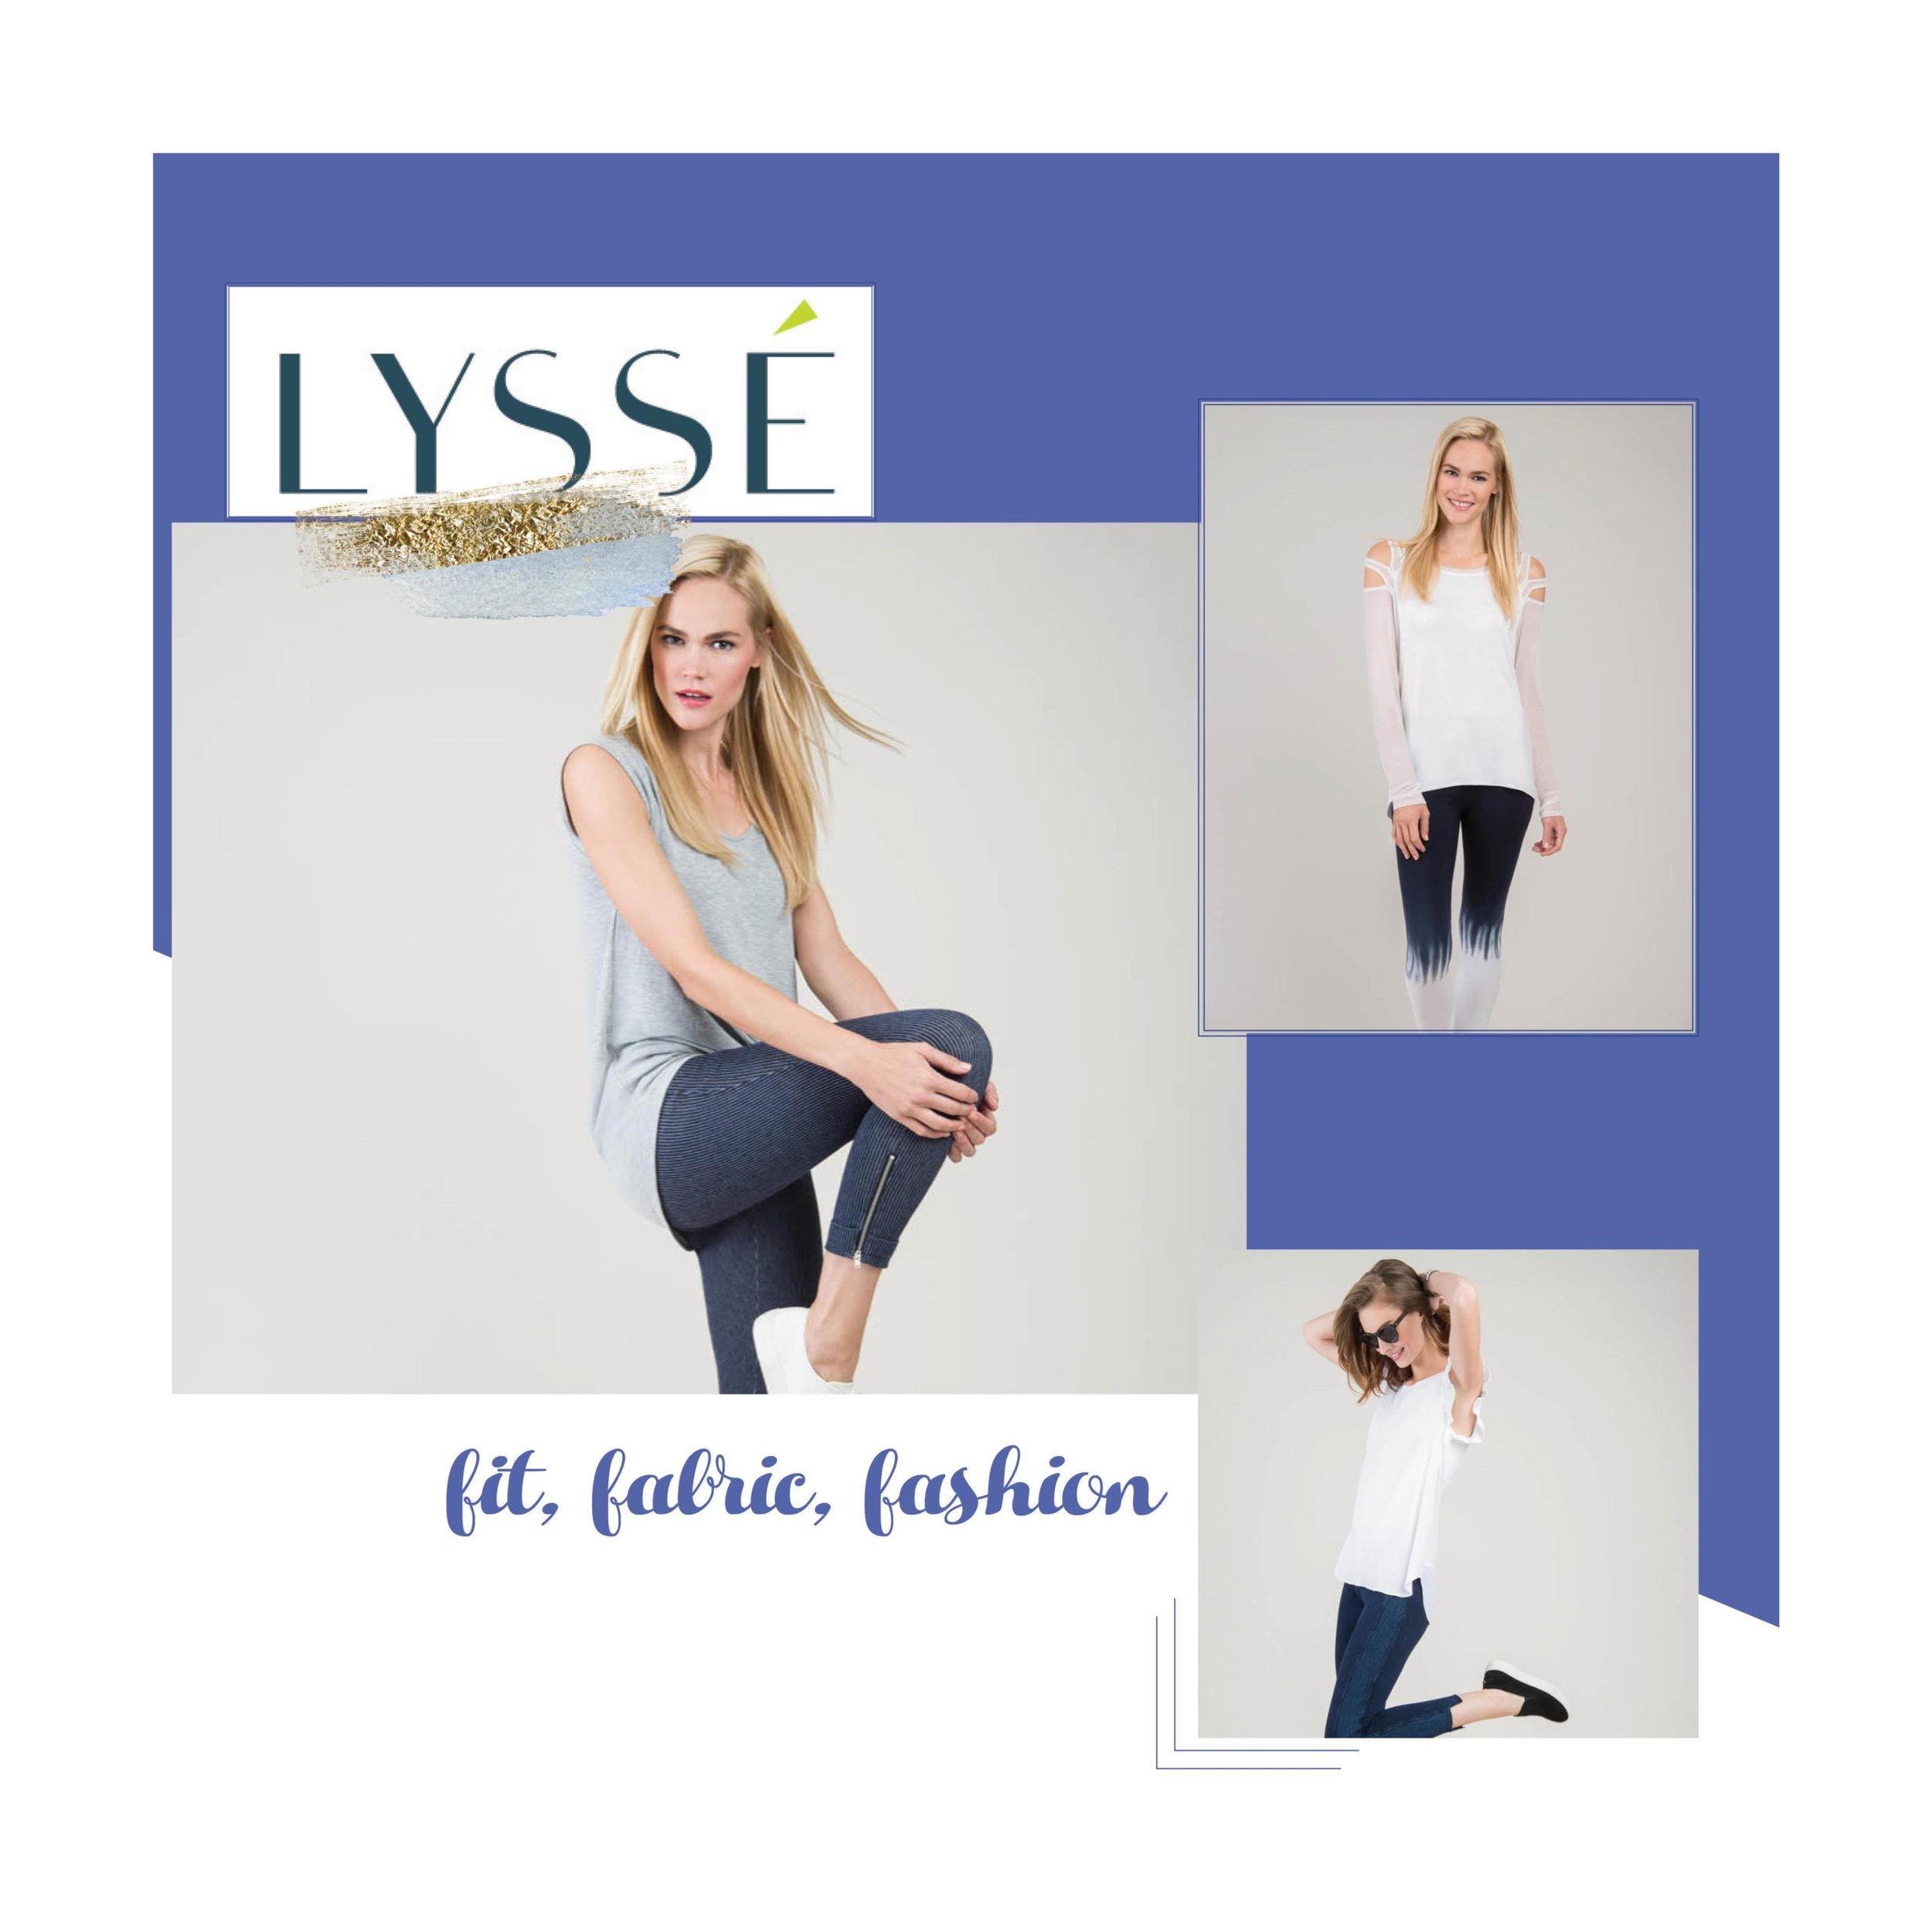 Lyssé - Several years ago, one amazing legging that was designed, using custom fabrics, special tailoring and a comfort fit has quickly evolved from a cultish fashion favorite into a women's lifestyle apparel collection.At Lyssé New York, our designers craft breathable, machine washable fabrics into curiously comfortable and timeless garments meant to last for years. As the foundation to everything Lyssé lovely, our fabrics are often custom created exclusively for us. They wear effortlessly, resist wrinkling, wash easily and showcase comfy, 4-way stretch.Quality fabric – rich in color, texture and resiliency – combines with expert construction, slimming seaming and unique detailing for modern wardrobe essentials you'll go to again and again.4-WAY STRETCH | BREATHABLE | TRAVEL FRIENDLY | CUSTOM DESIGNED | MACHINE WASHABLECrafted for where ever life's journey takes you – Lyssé garments transcend age groups, occupations and lifestyles to comfortably move and live as you do. Beautifully and assuredly.